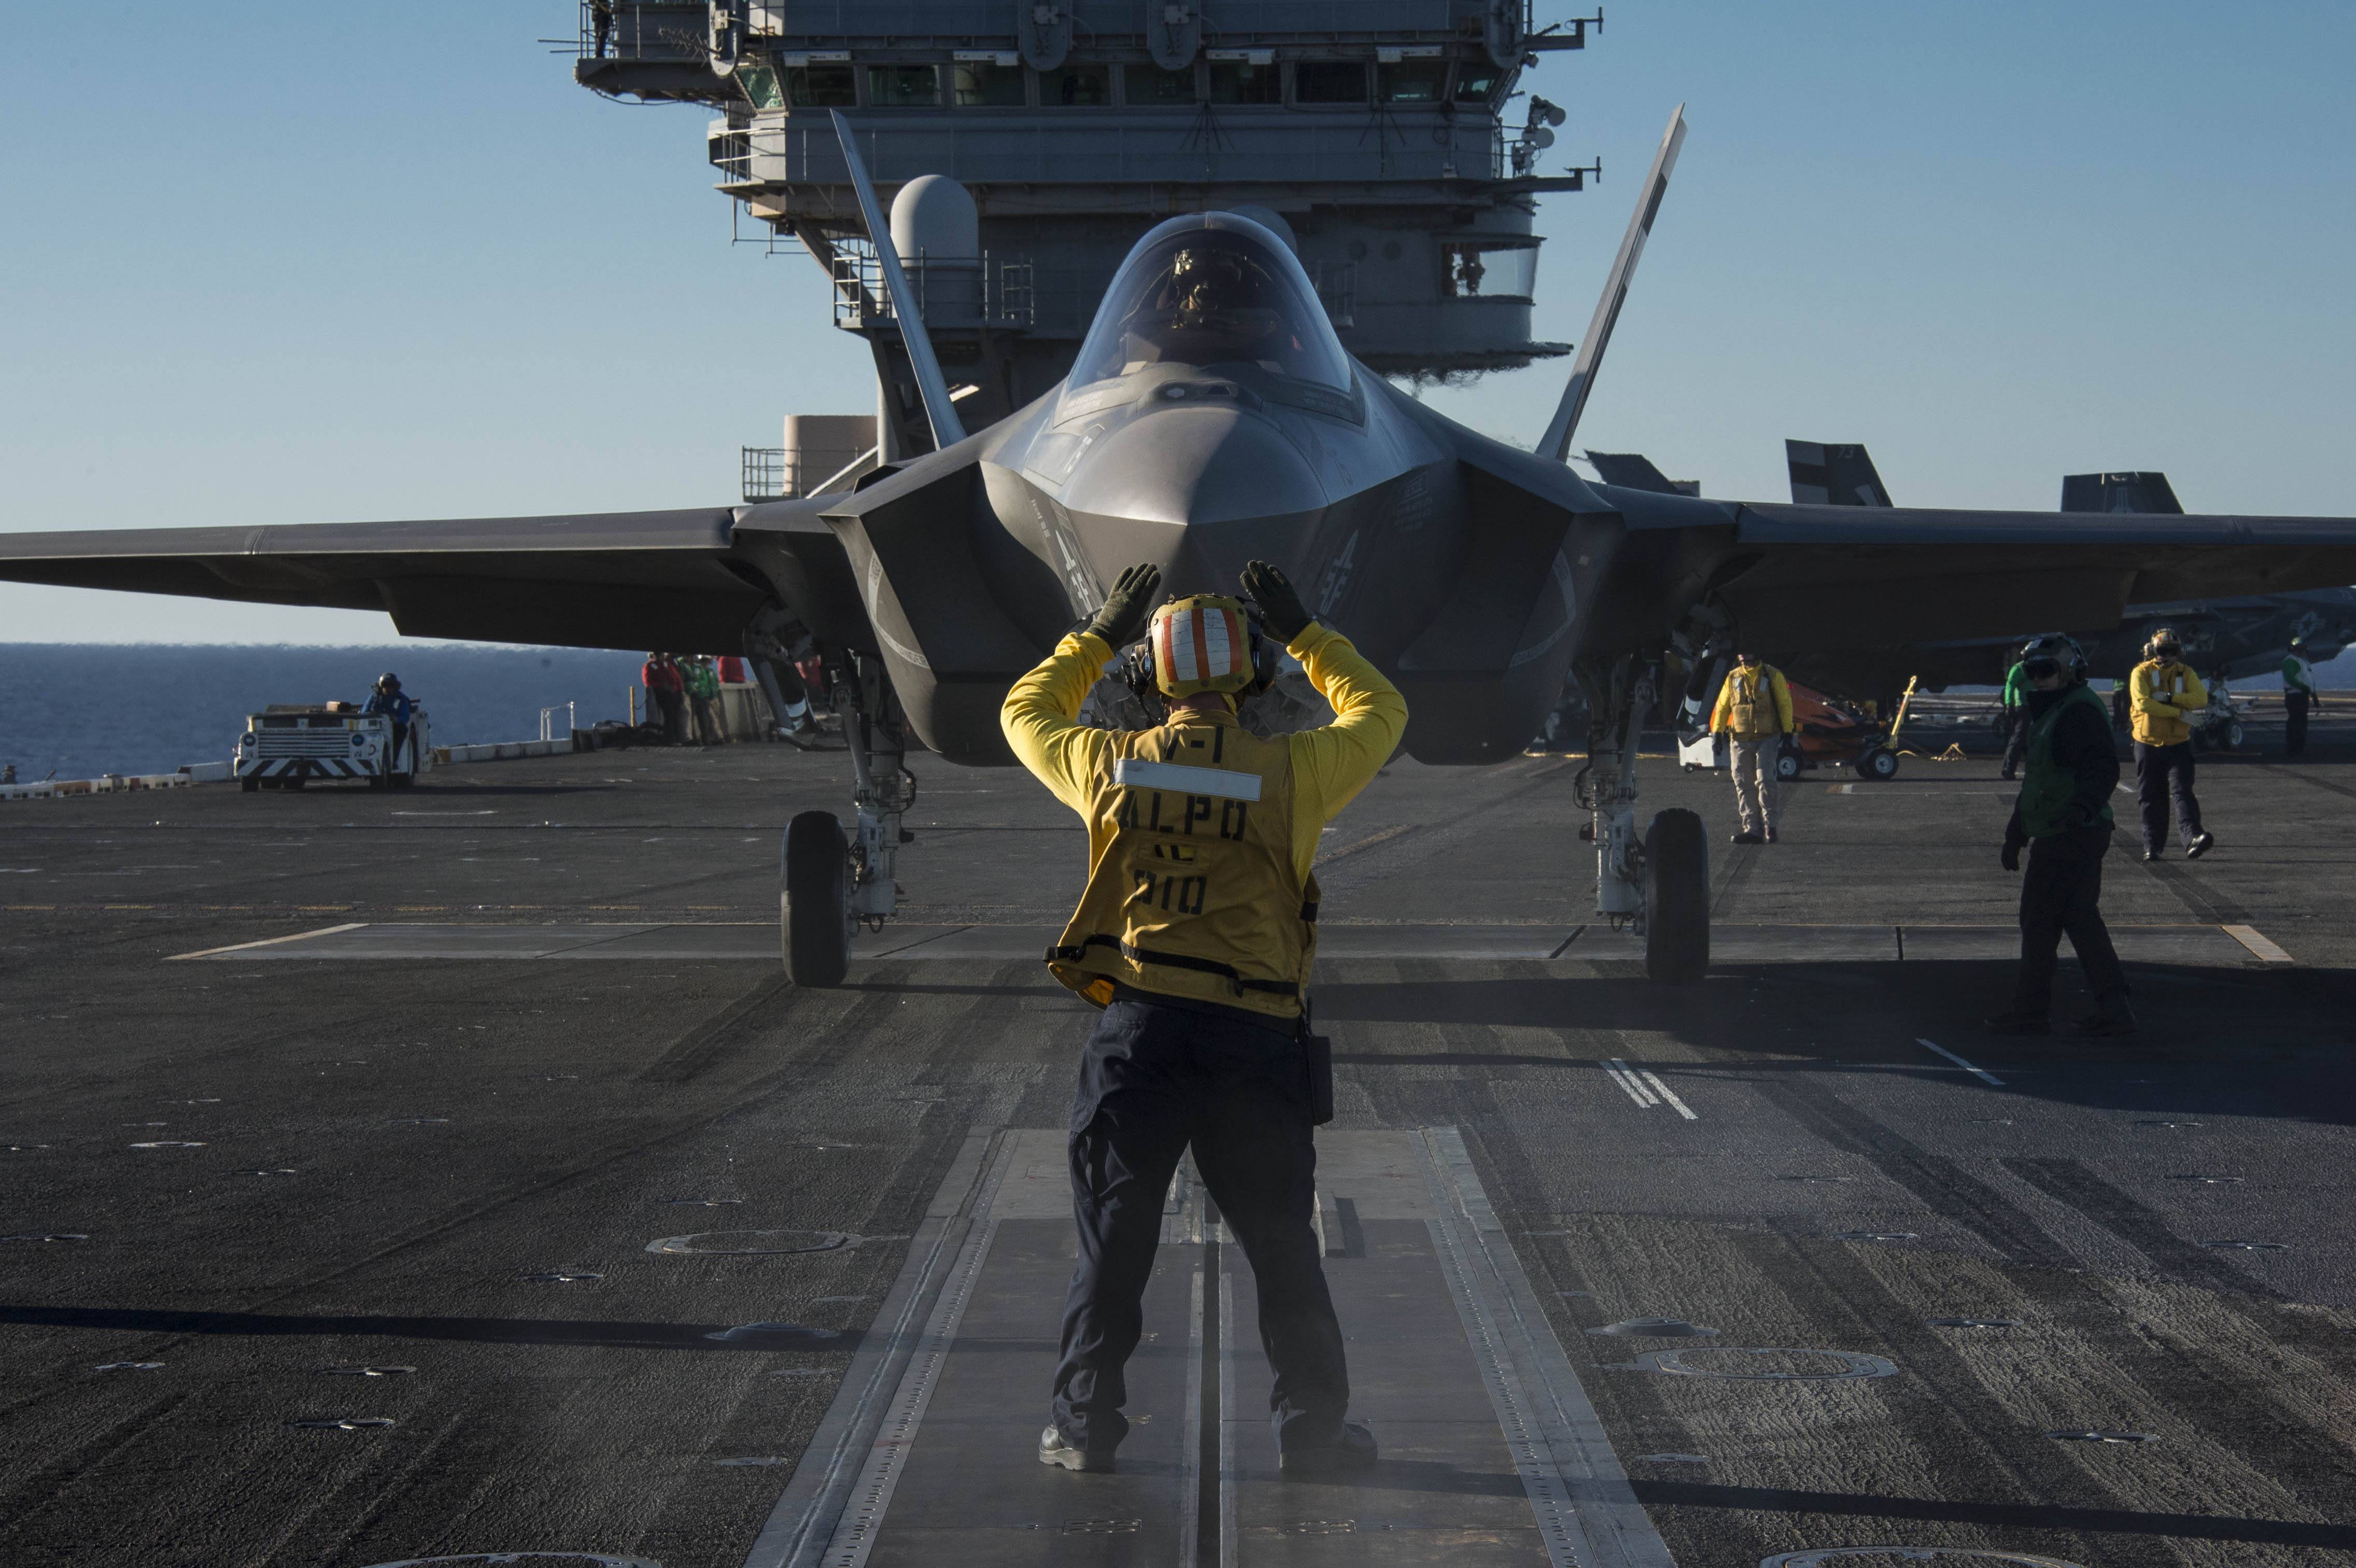 PACIFIC OCEAN (Nov. 4, 2014) An F-35C Lightning II carrier variant joint strike fighter is prepared for launch aboard the aircraft carrier USS Nimitz (CVN 68). The F-35 Lightning II is undergoing initial at-sea trials aboard Nimitz. (U.S. Navy video by Mass Communication Specialist 1st Class Brett Cote/Released)